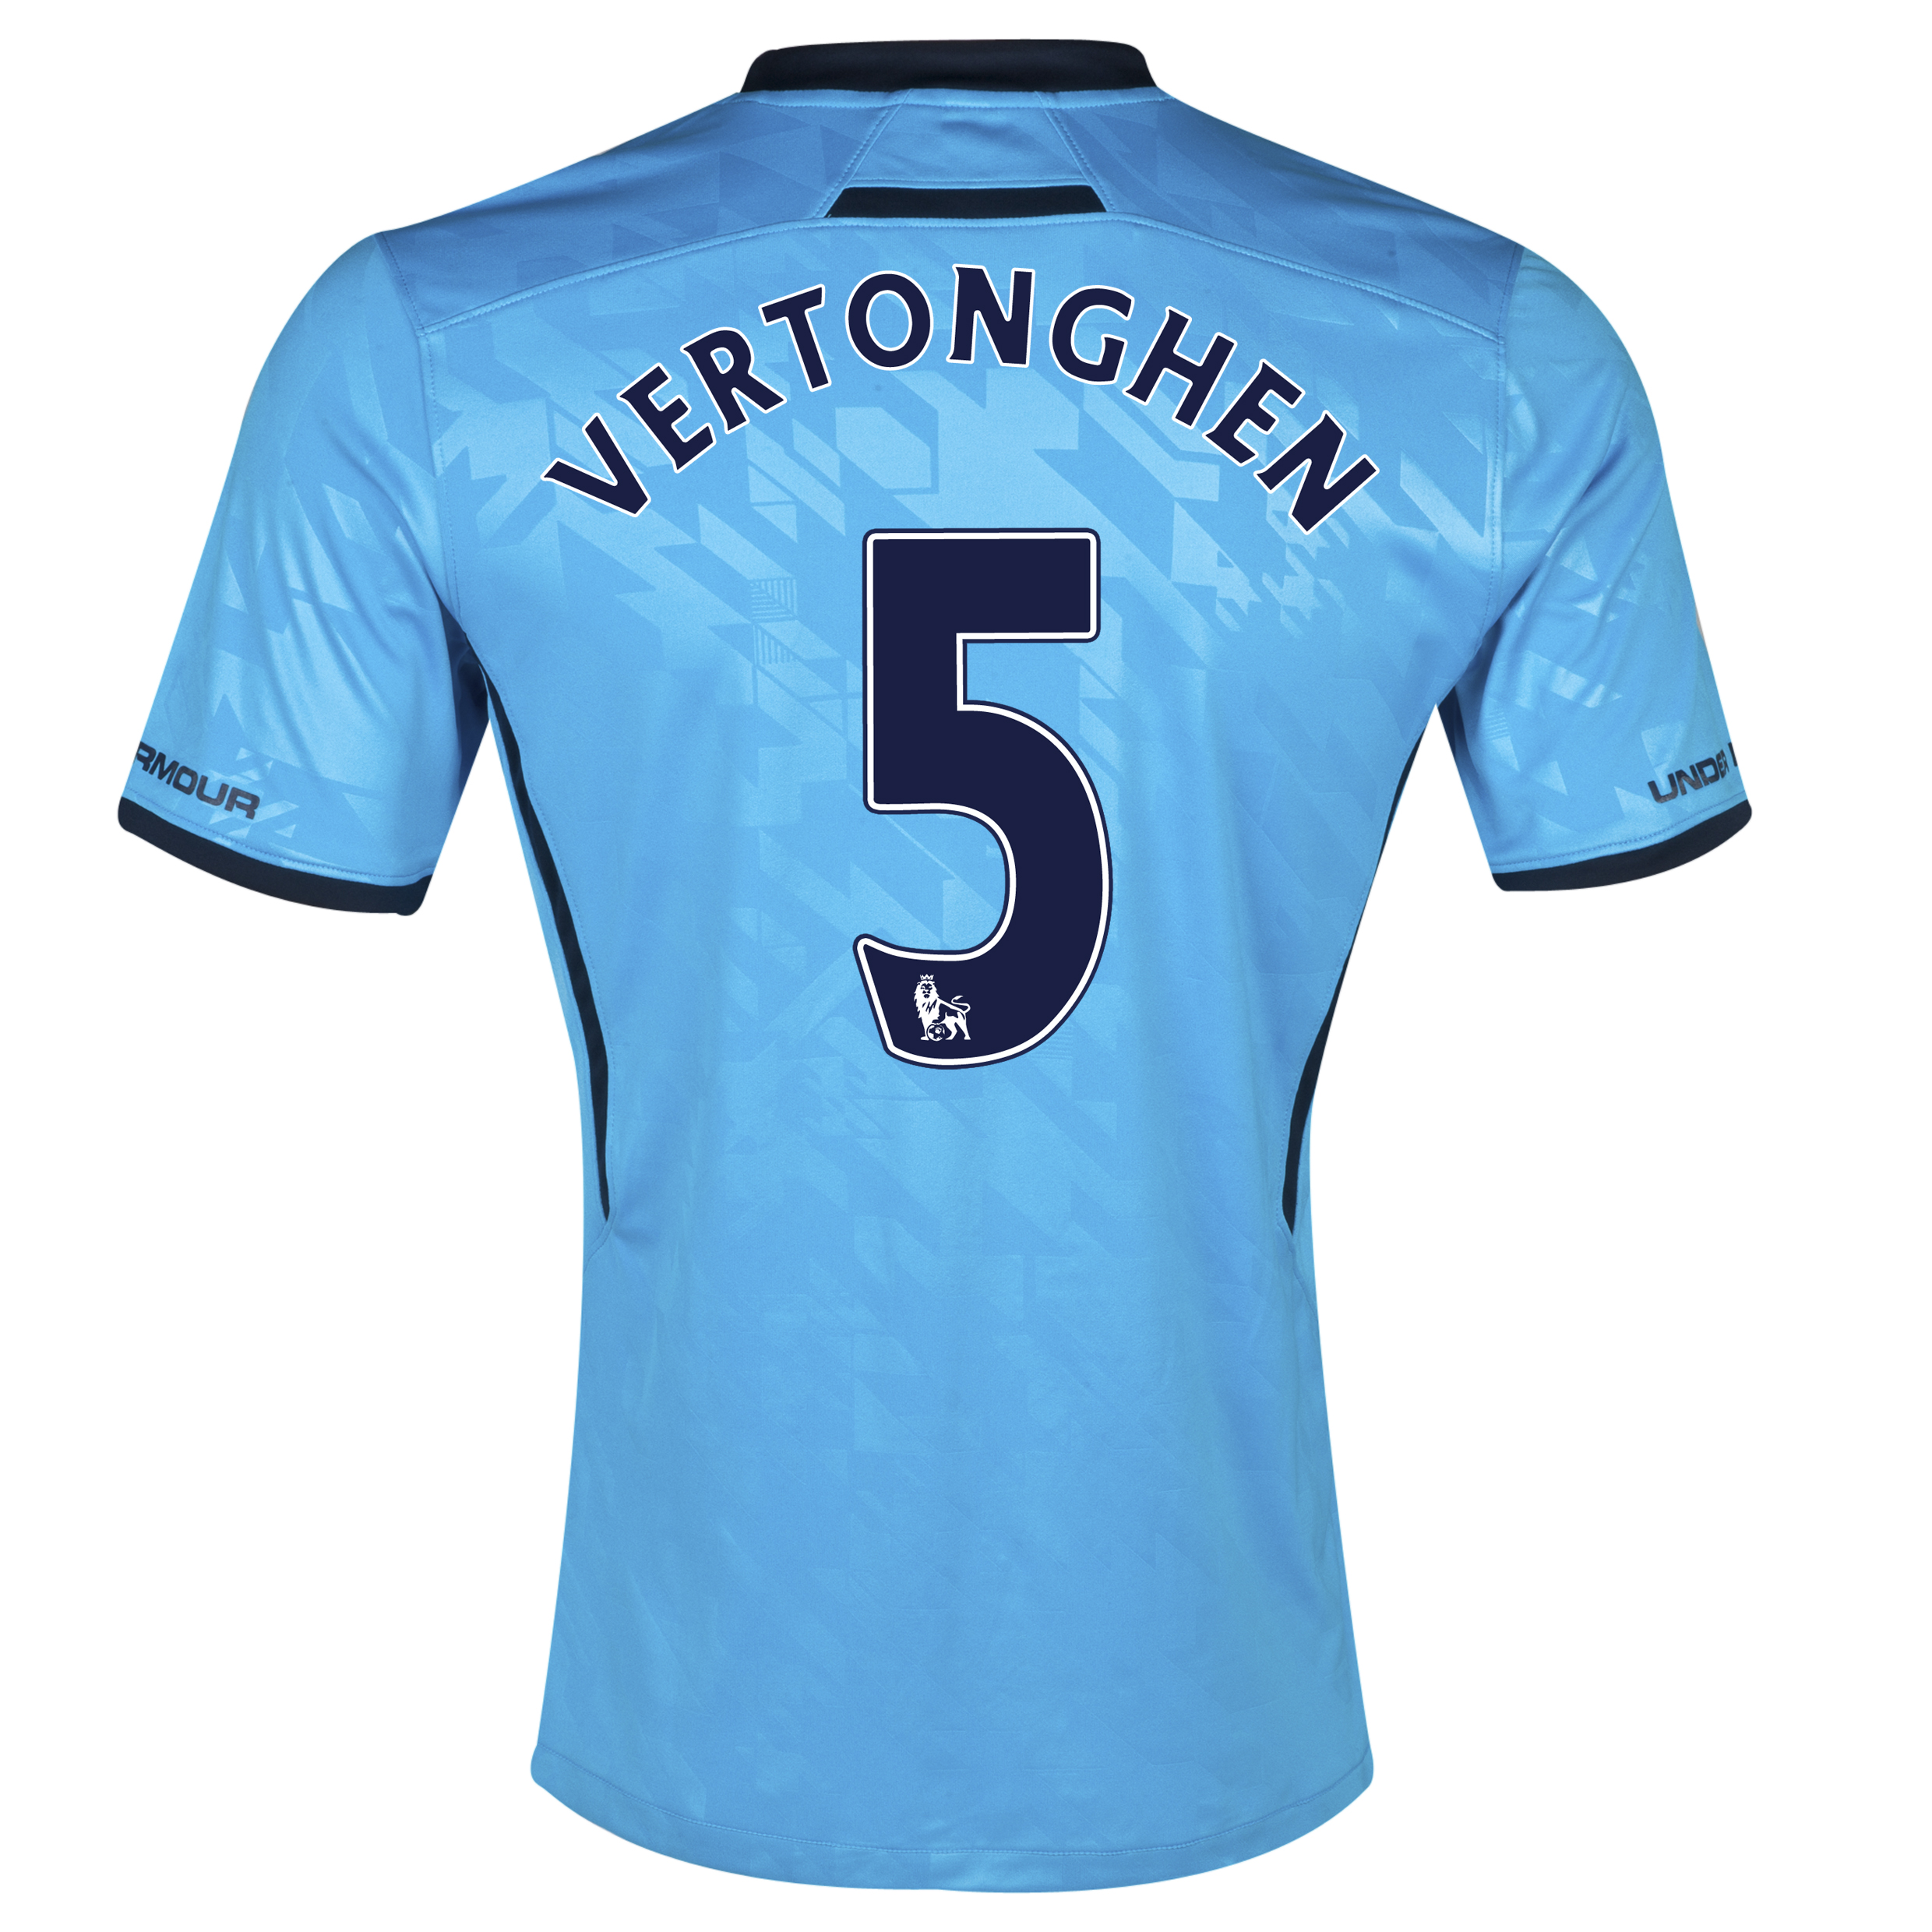 Tottenham Hotspur Away Shirt 2013/14 - Womens with Vertonghen 5 printing